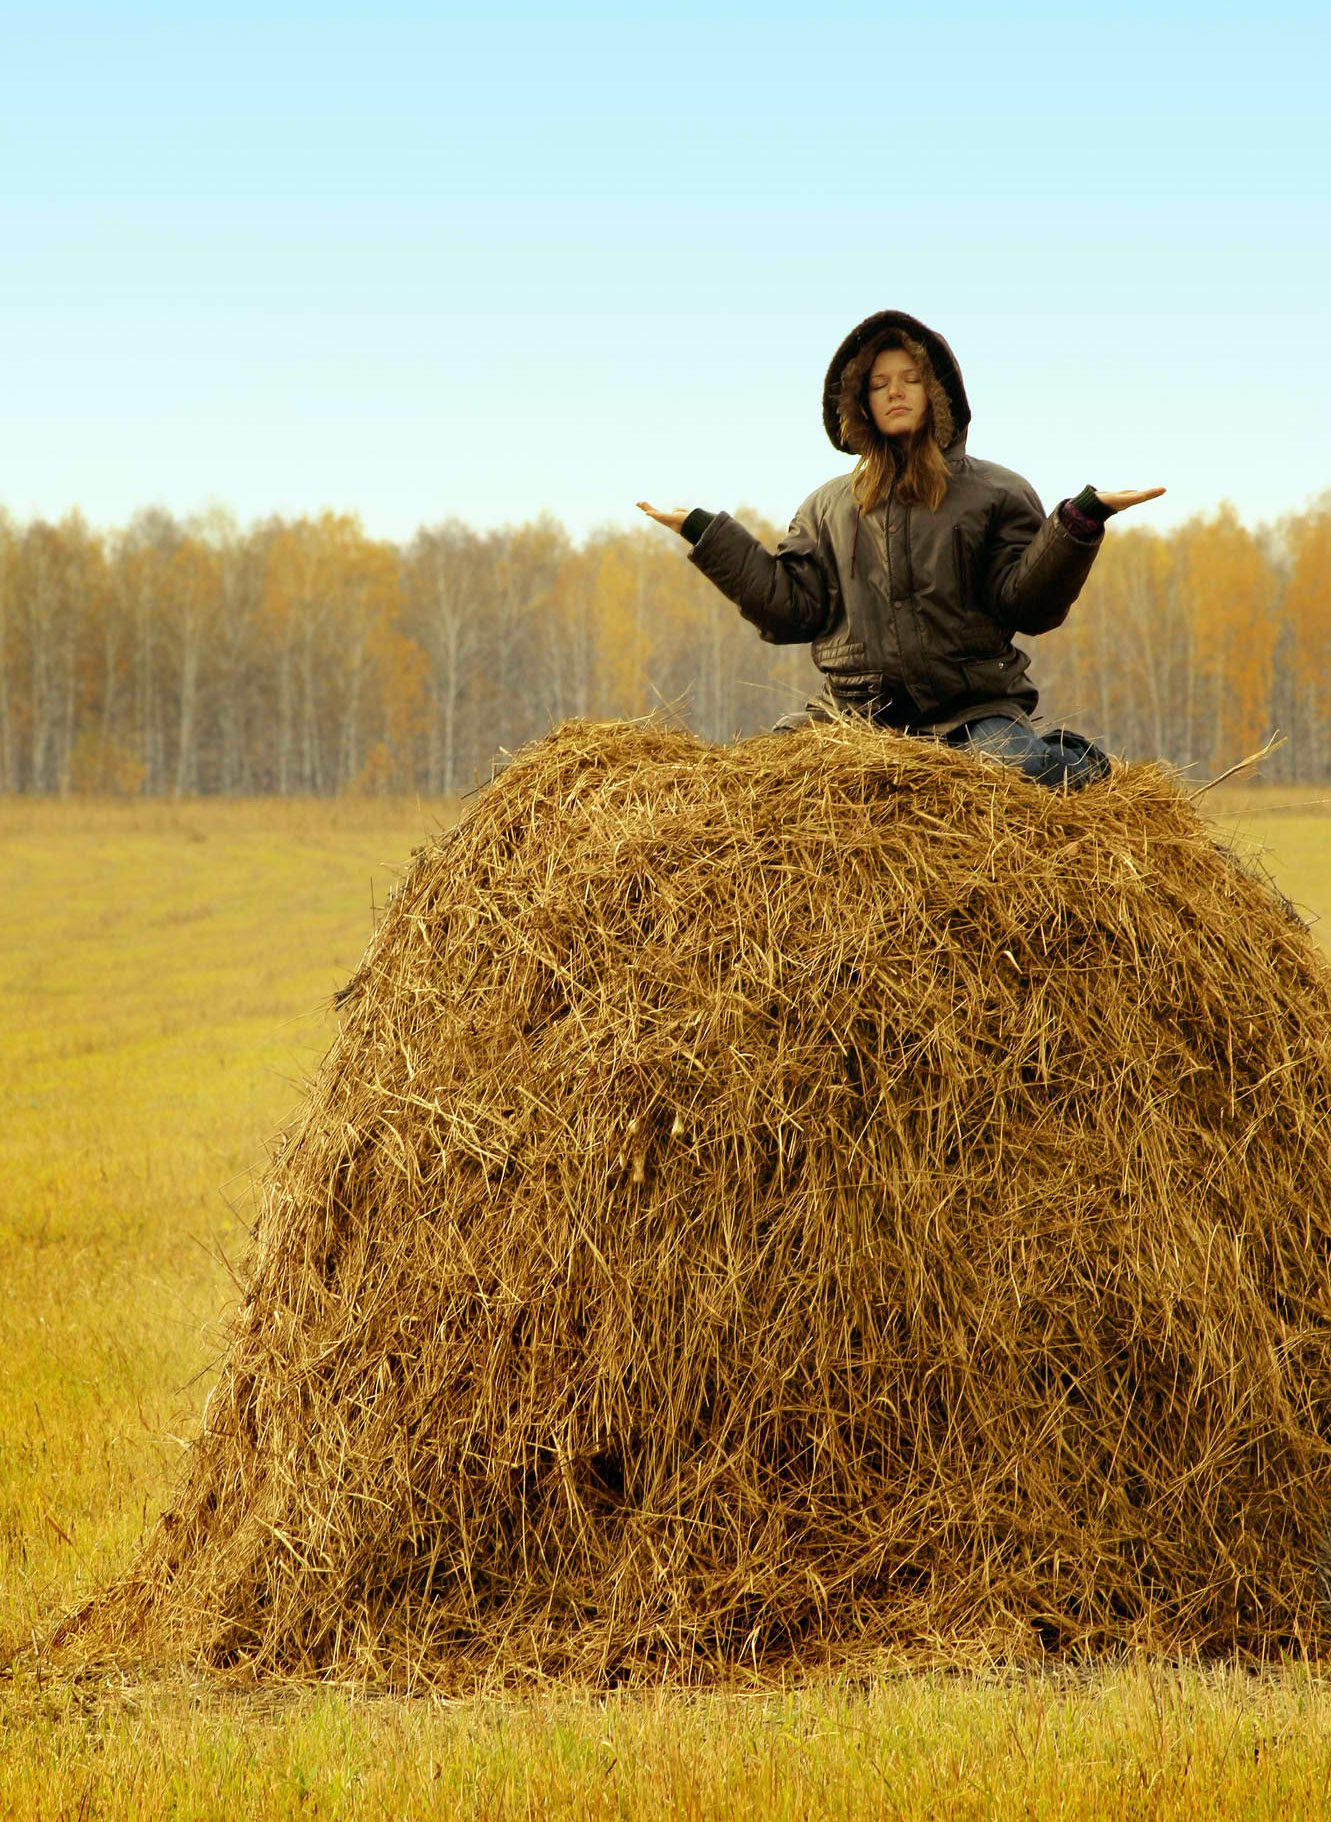 Definition of Haystack by Merriam-Webster